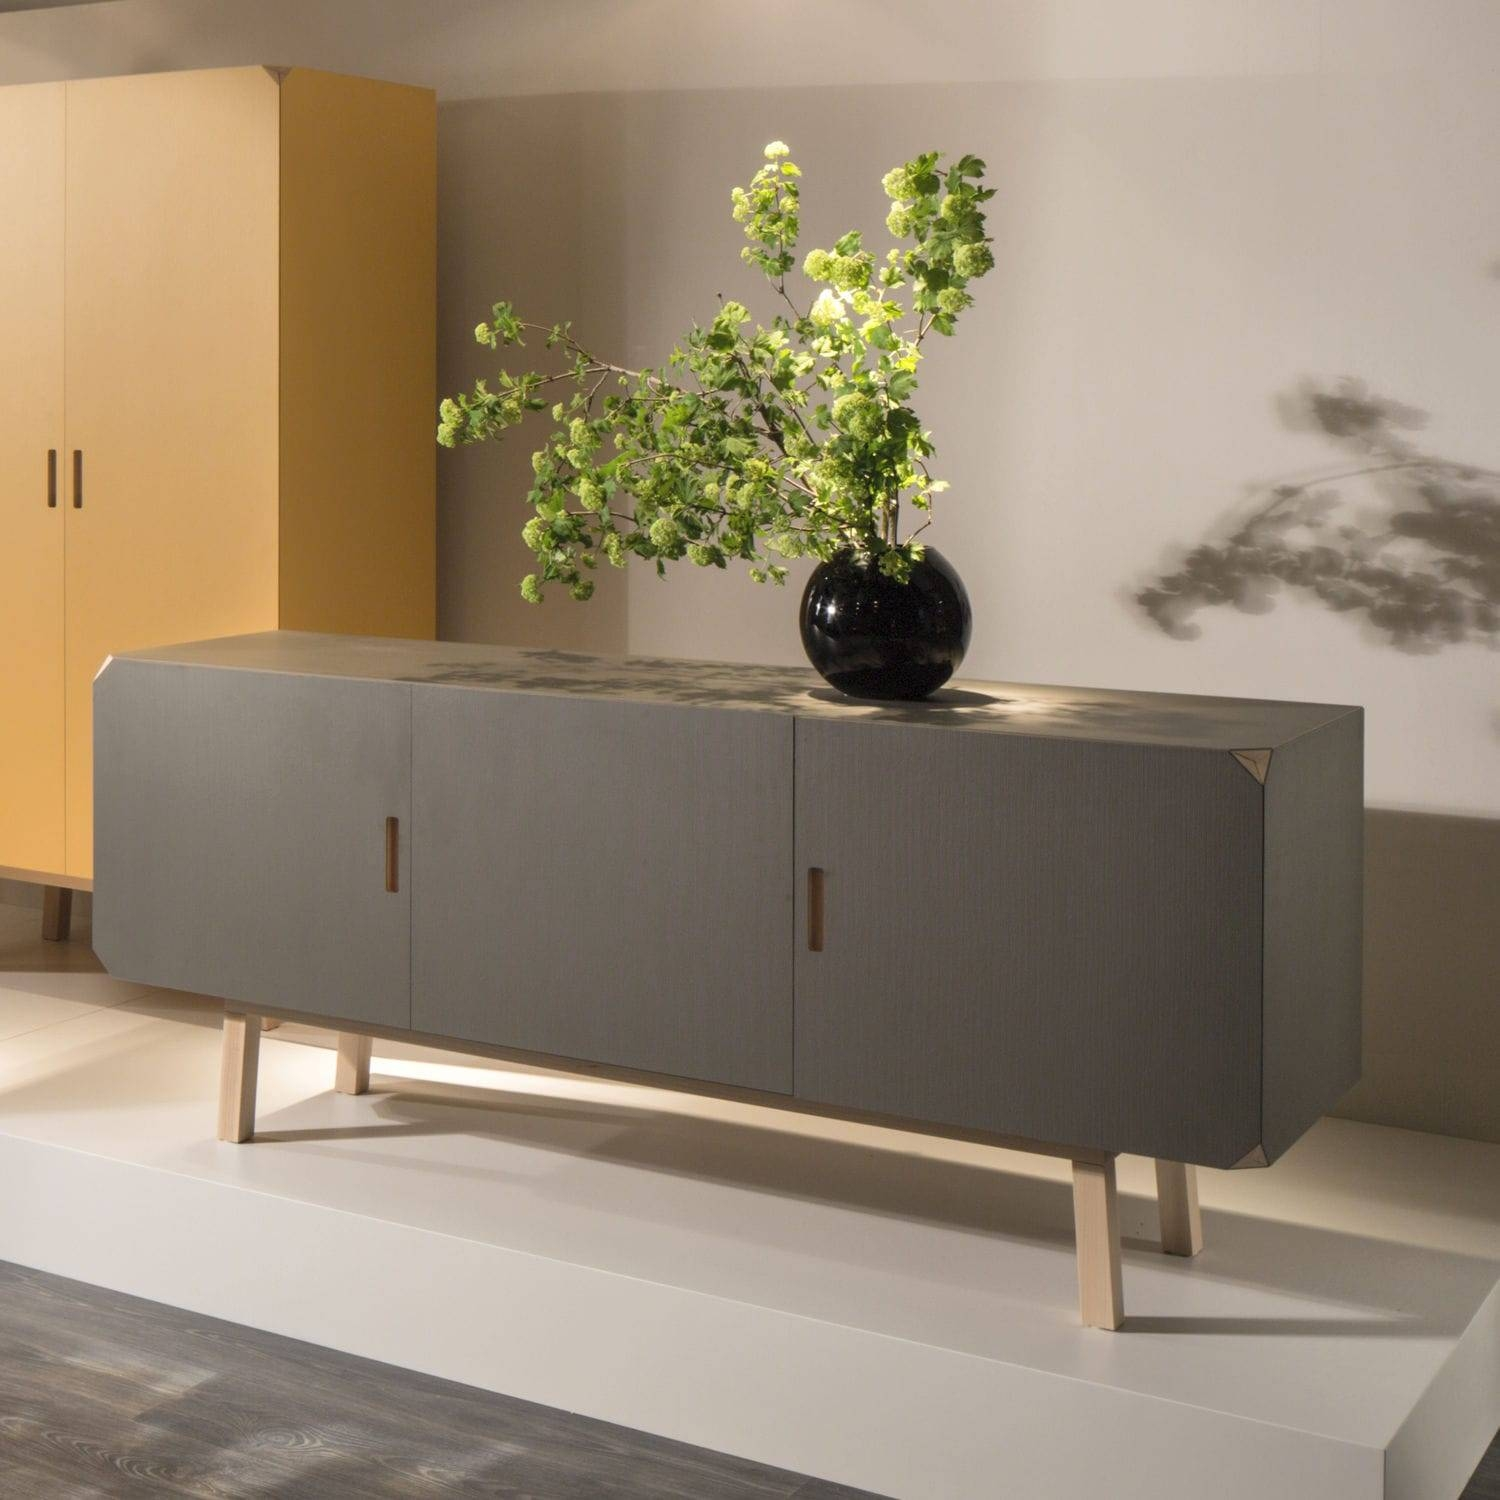 Contemporary Sideboard / Beech / Gray – Cartalegnogiulio For Beech Sideboards (#7 of 20)